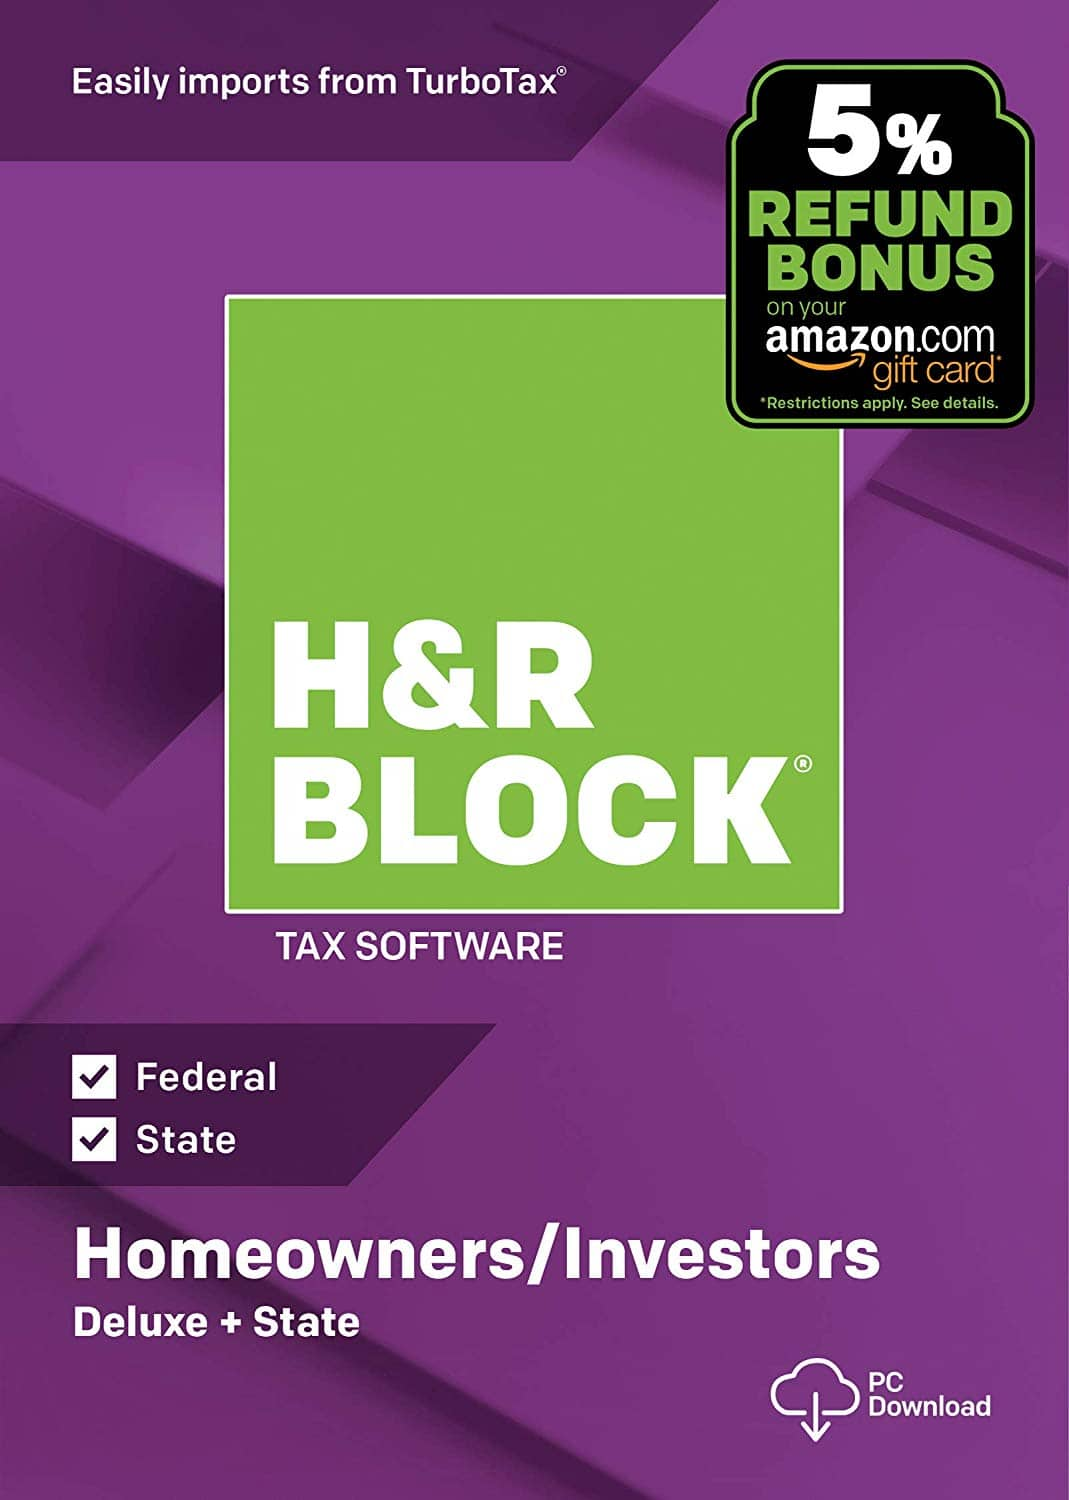 H&R Block Tax Software Deluxe + State 2018 with 5% Refund Bonus Offer [PC Download] $22.49